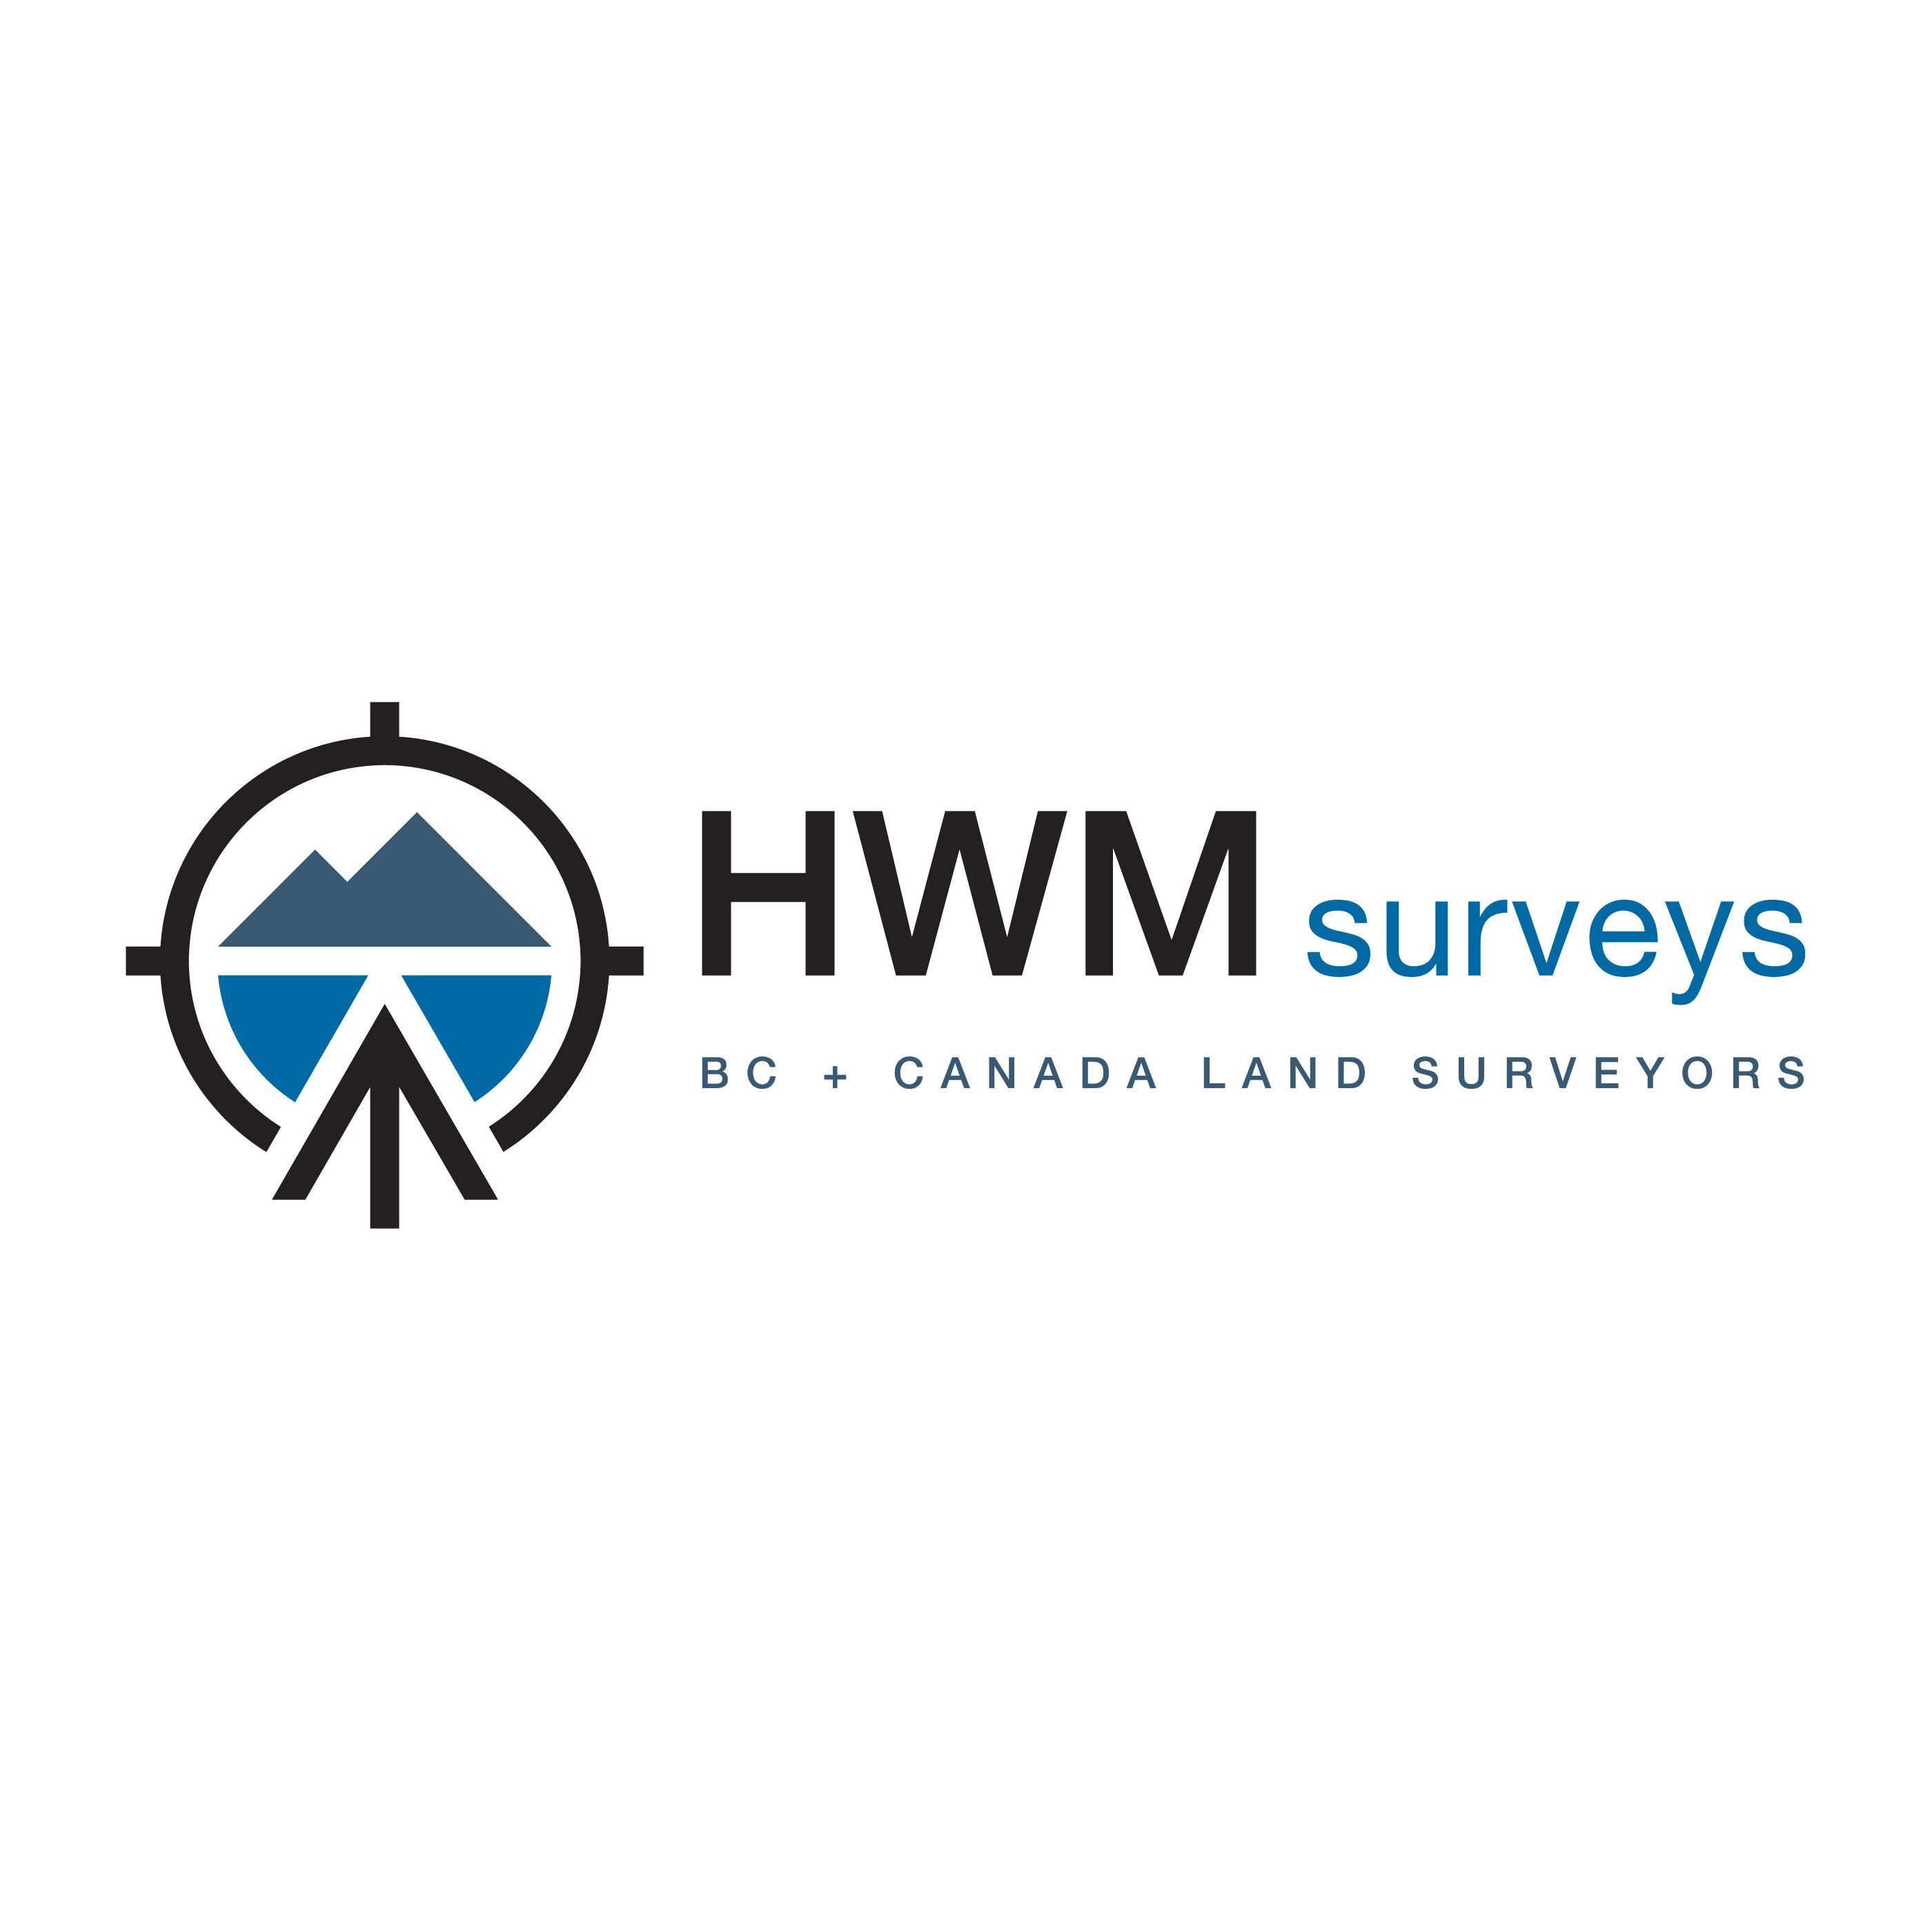 A corporate logo designed for a BC + Canada Land surveying